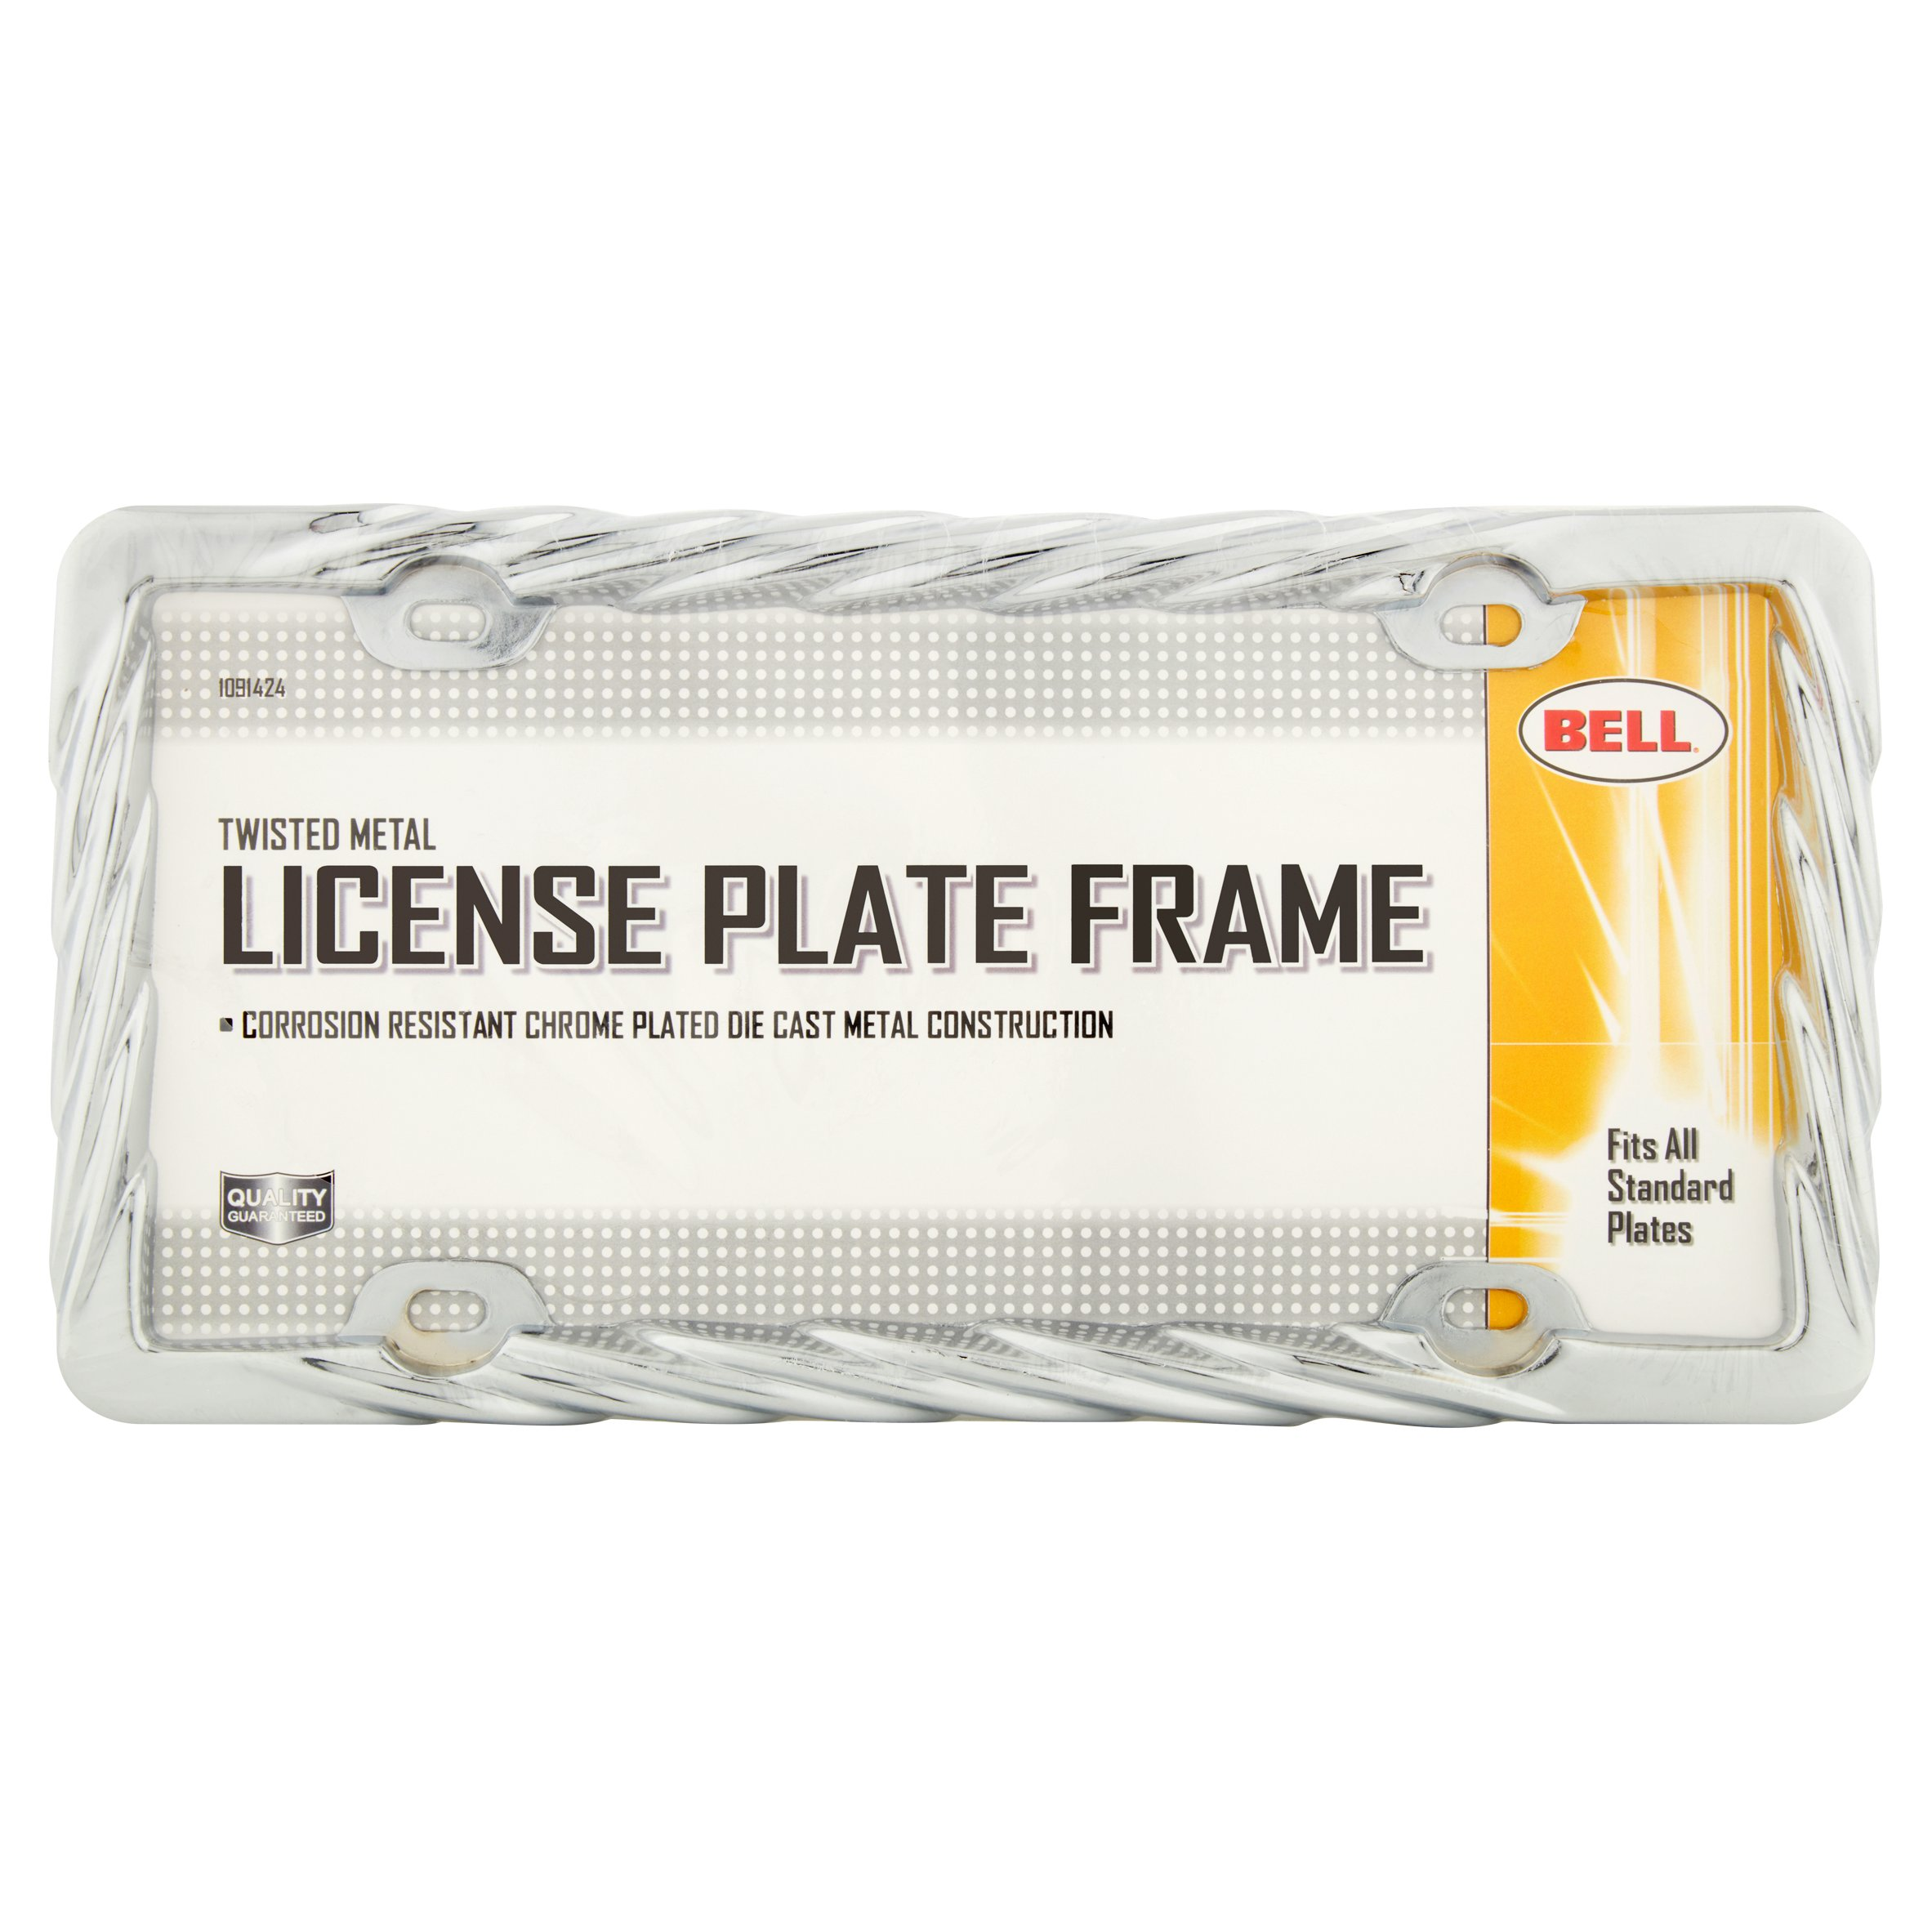 Bell Twisted Metal License Plate Frame